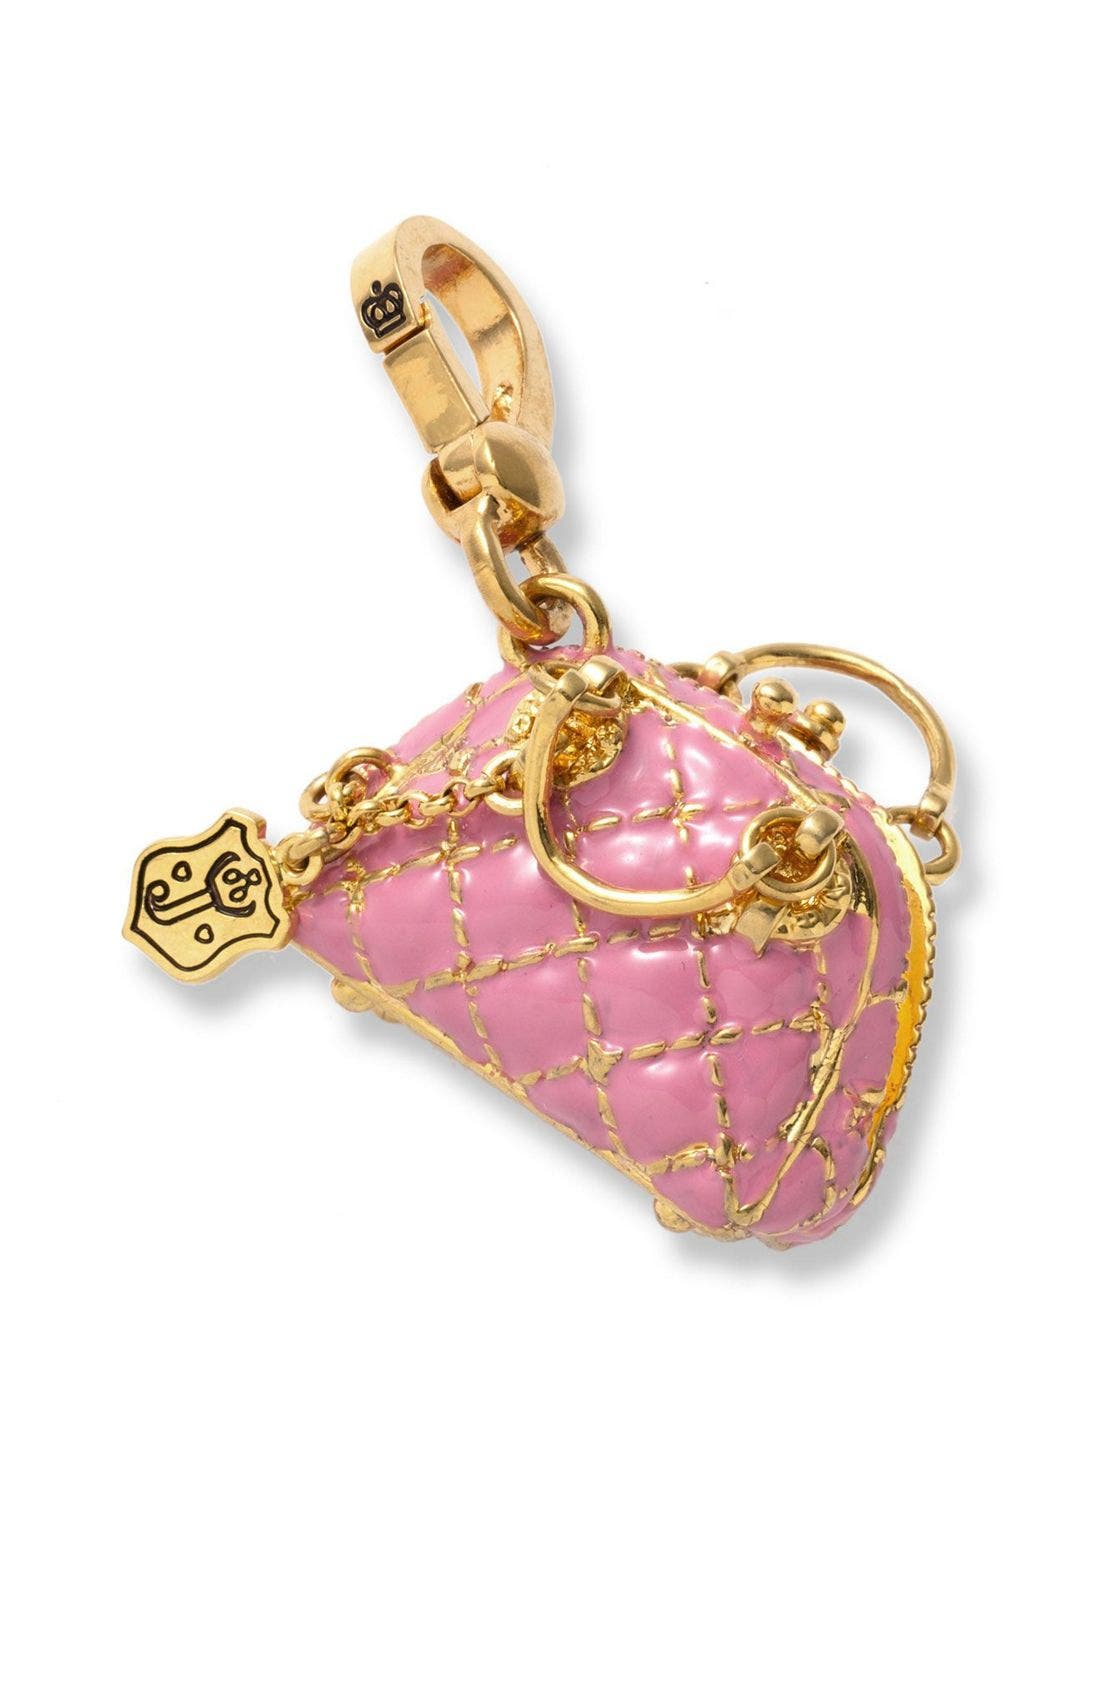 Main Image - Juicy Couture 'Status Bag' Pink Charm